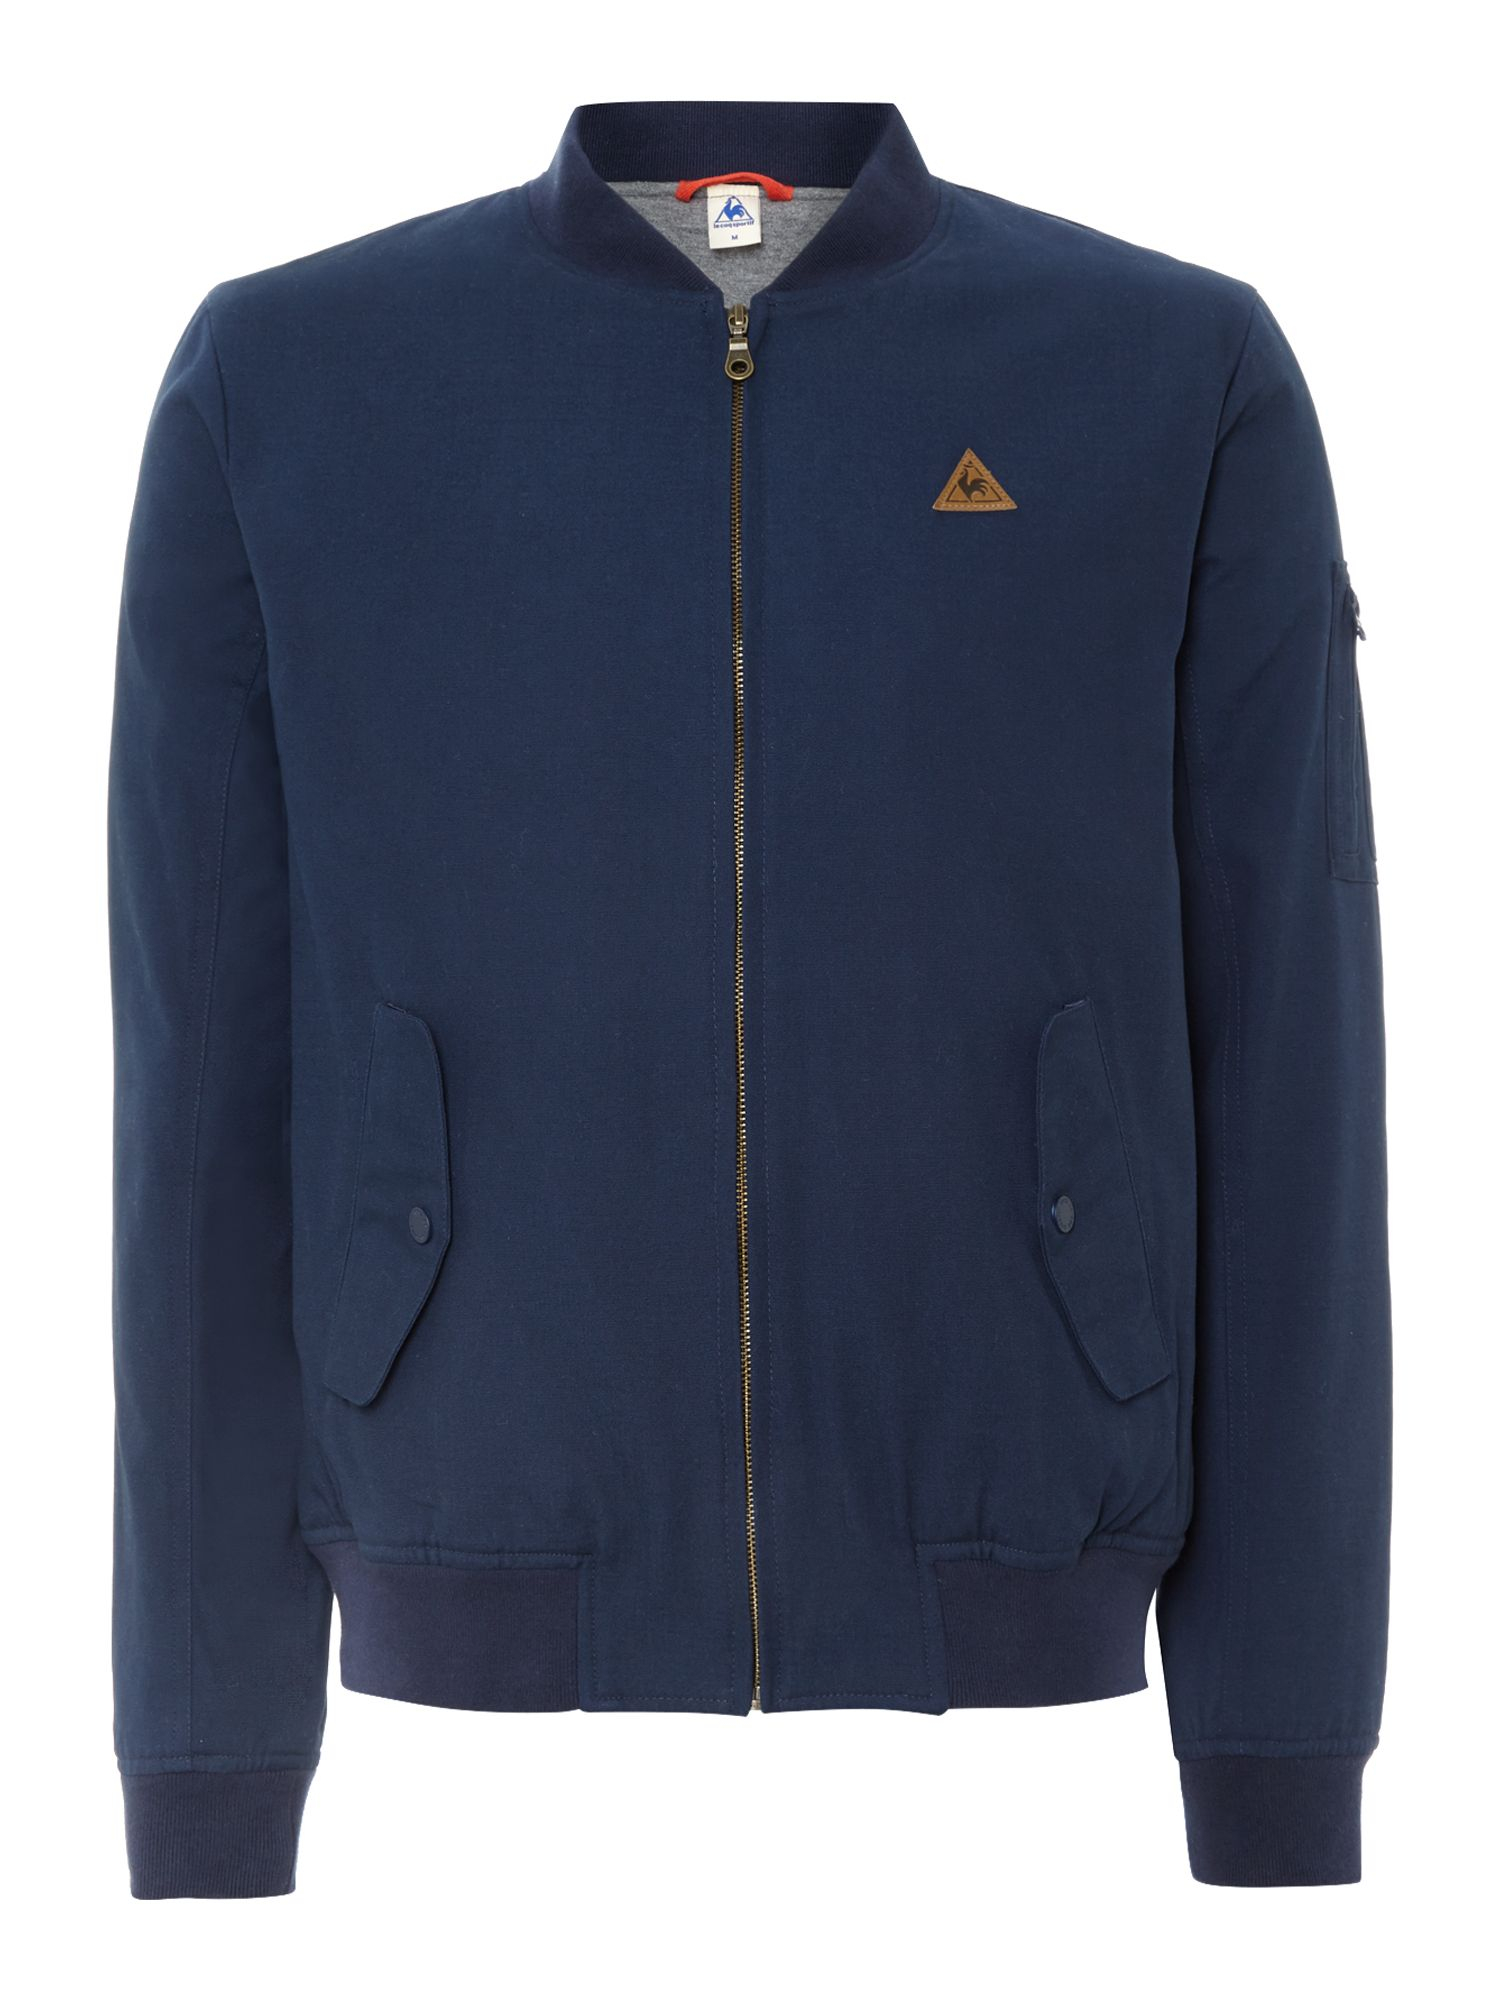 le coq sportif fantaise mirantin bomber jacket in blue for men lyst